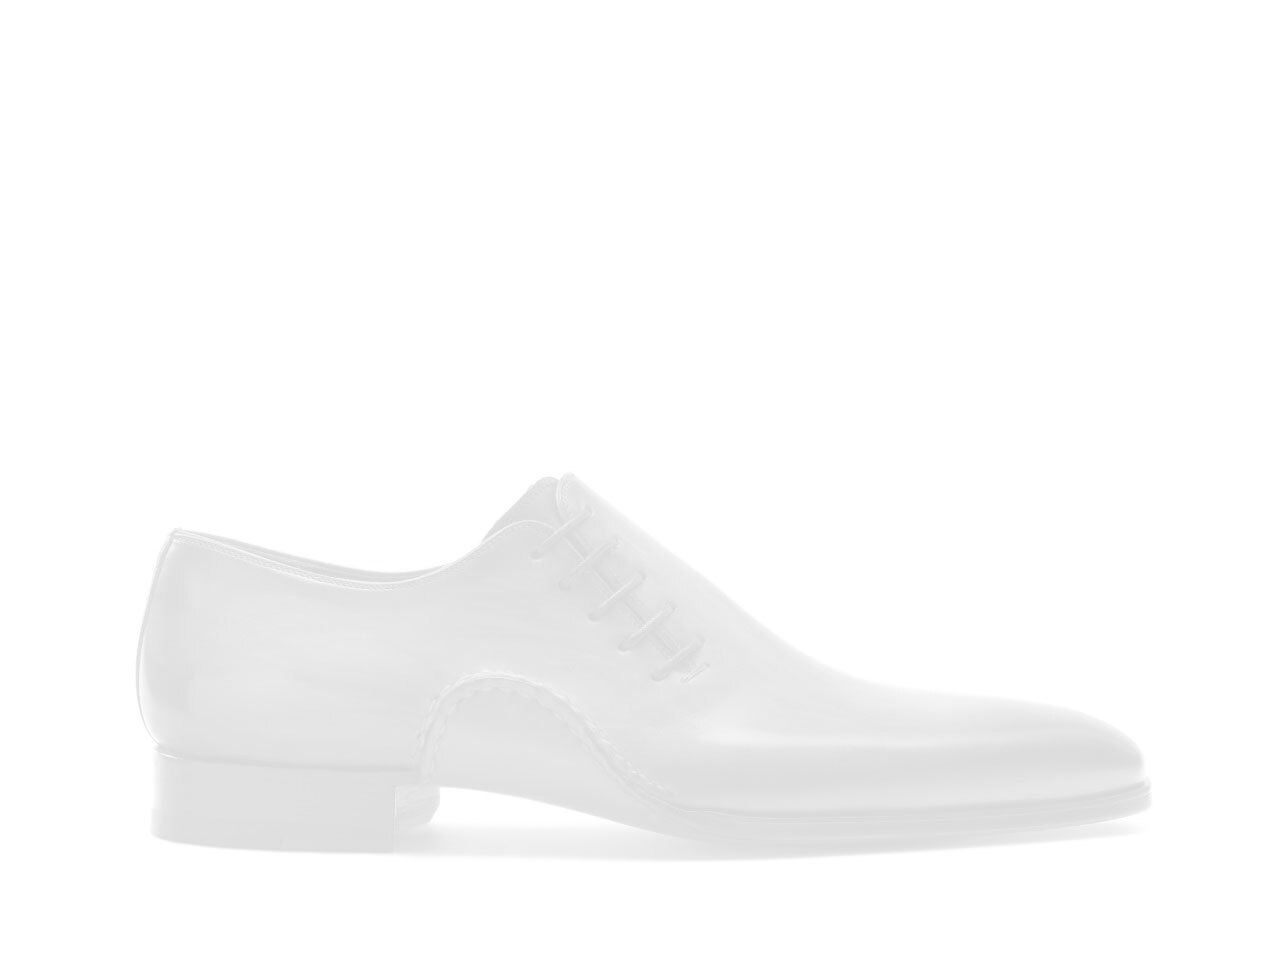 Side view of the Magnanni Ecija Navy Men's Sneakers